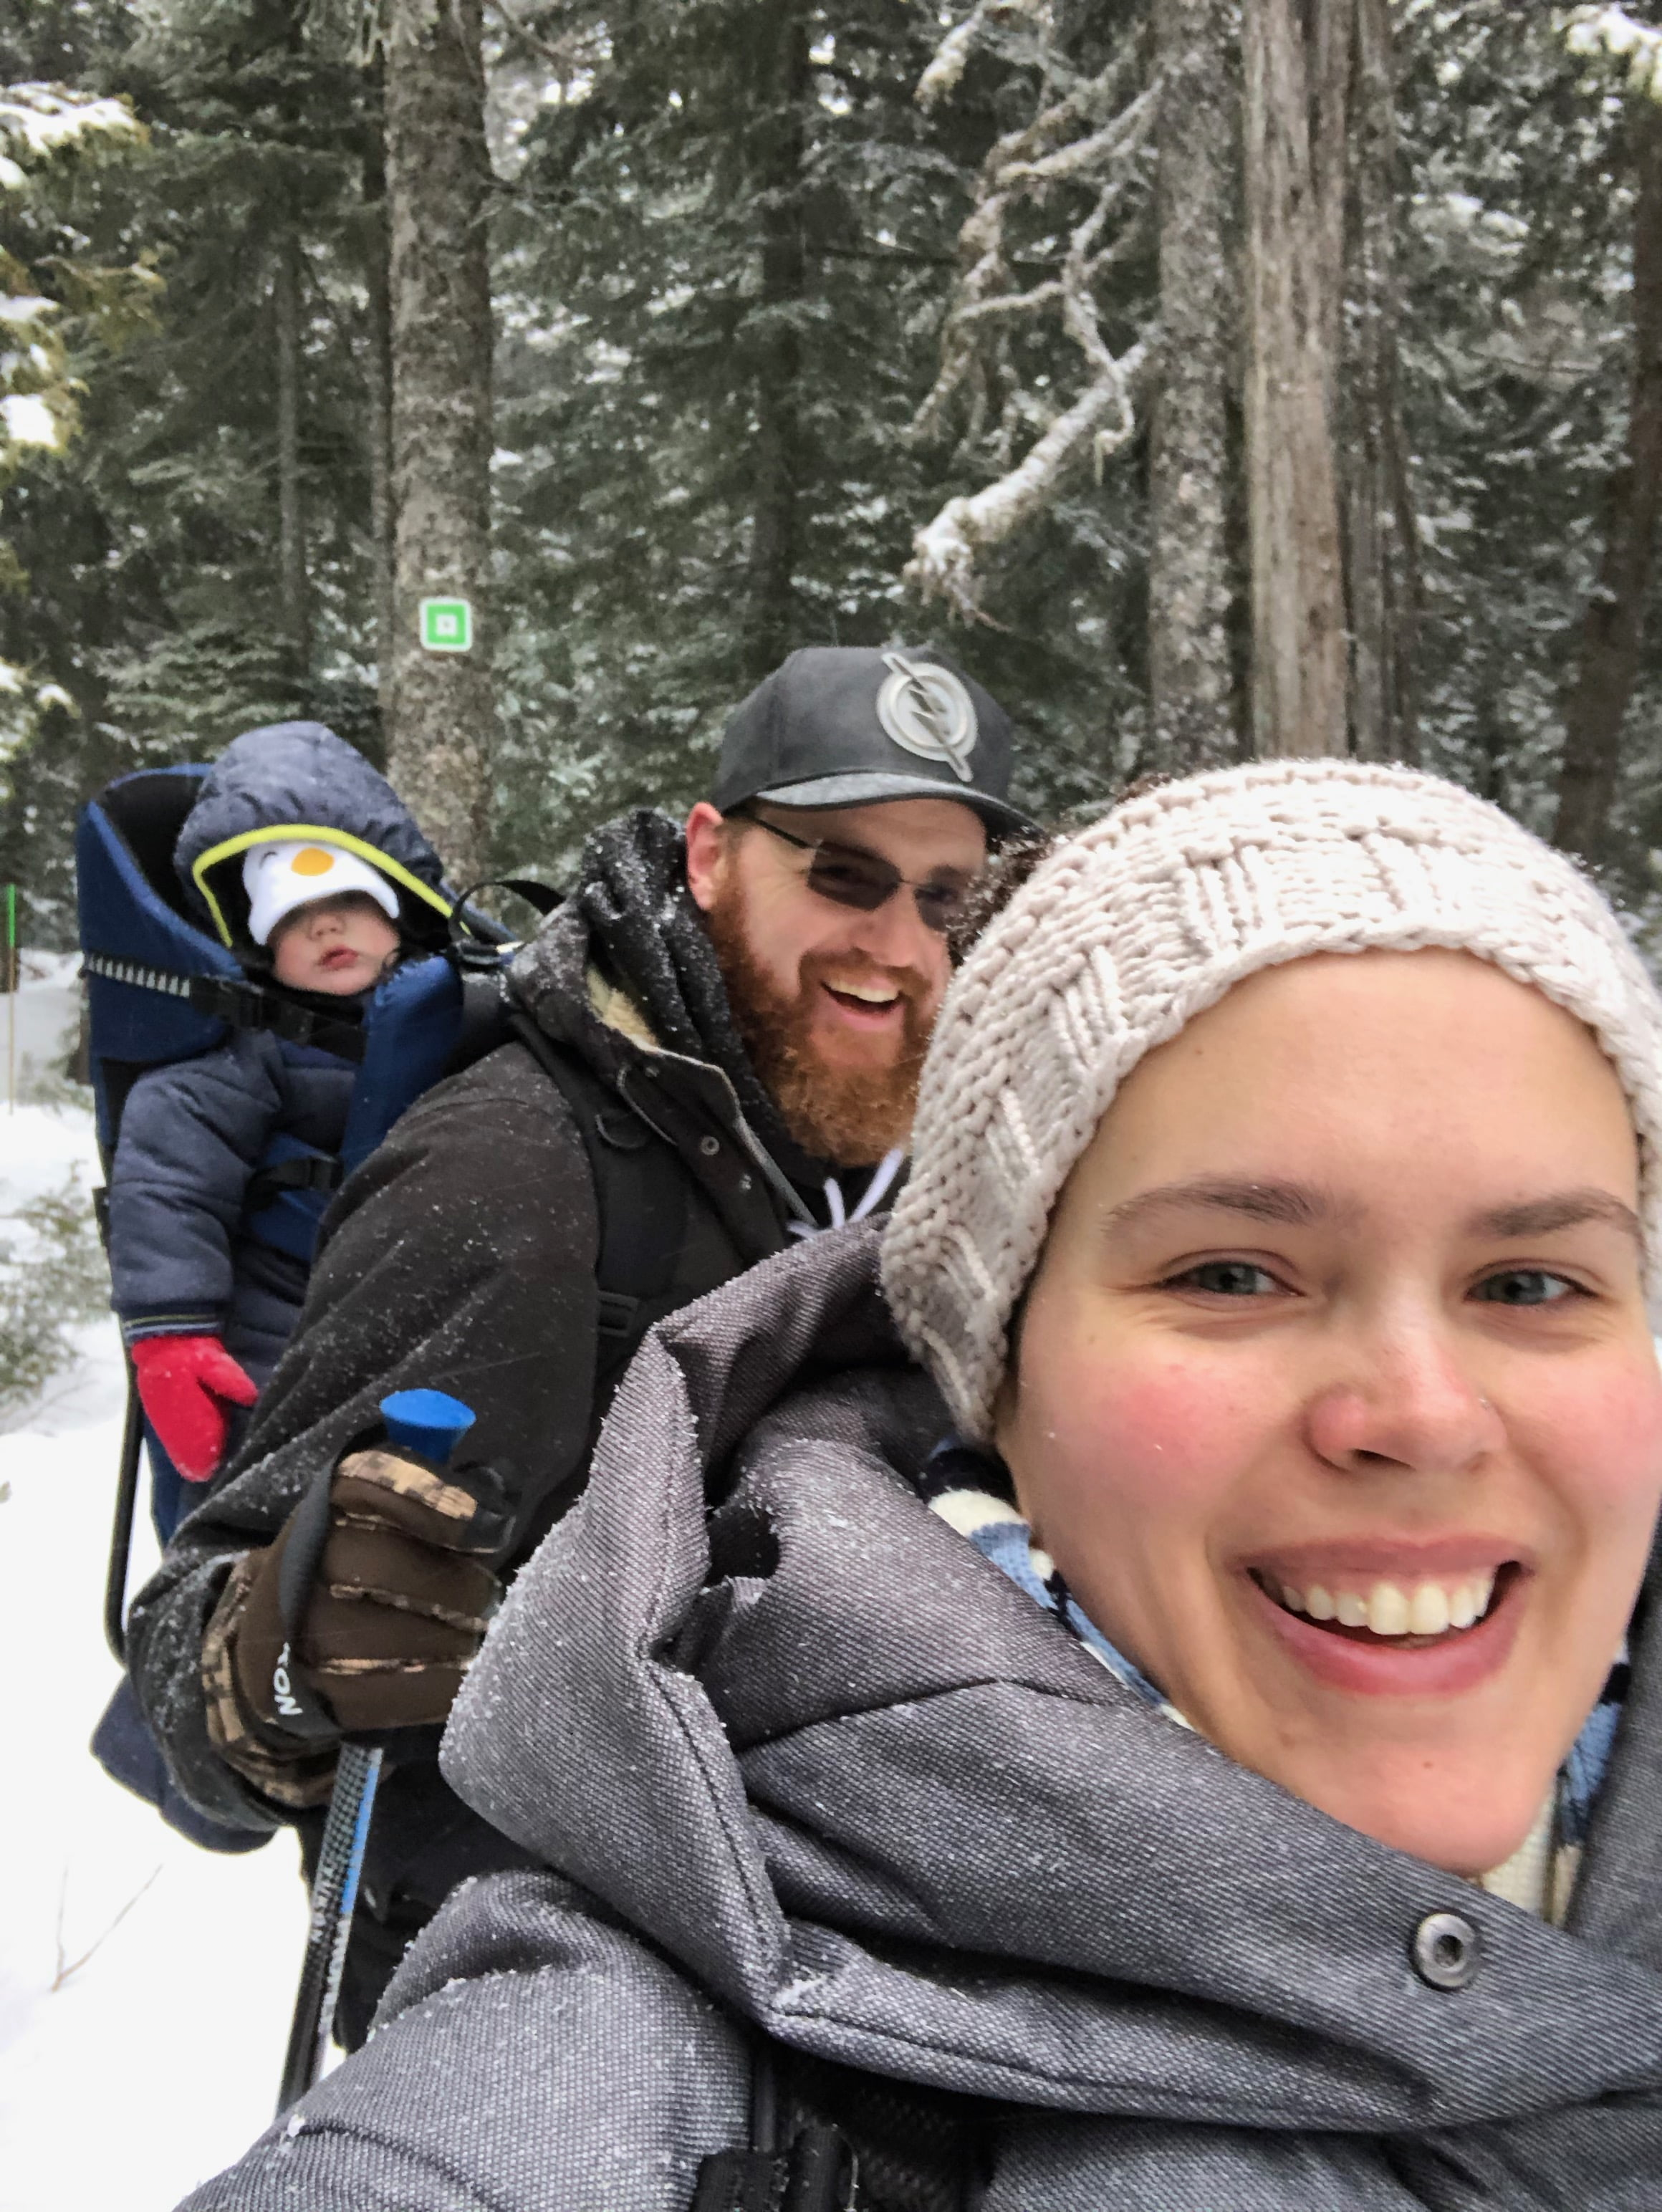 Family Snowshoeing with Baby in Carrier